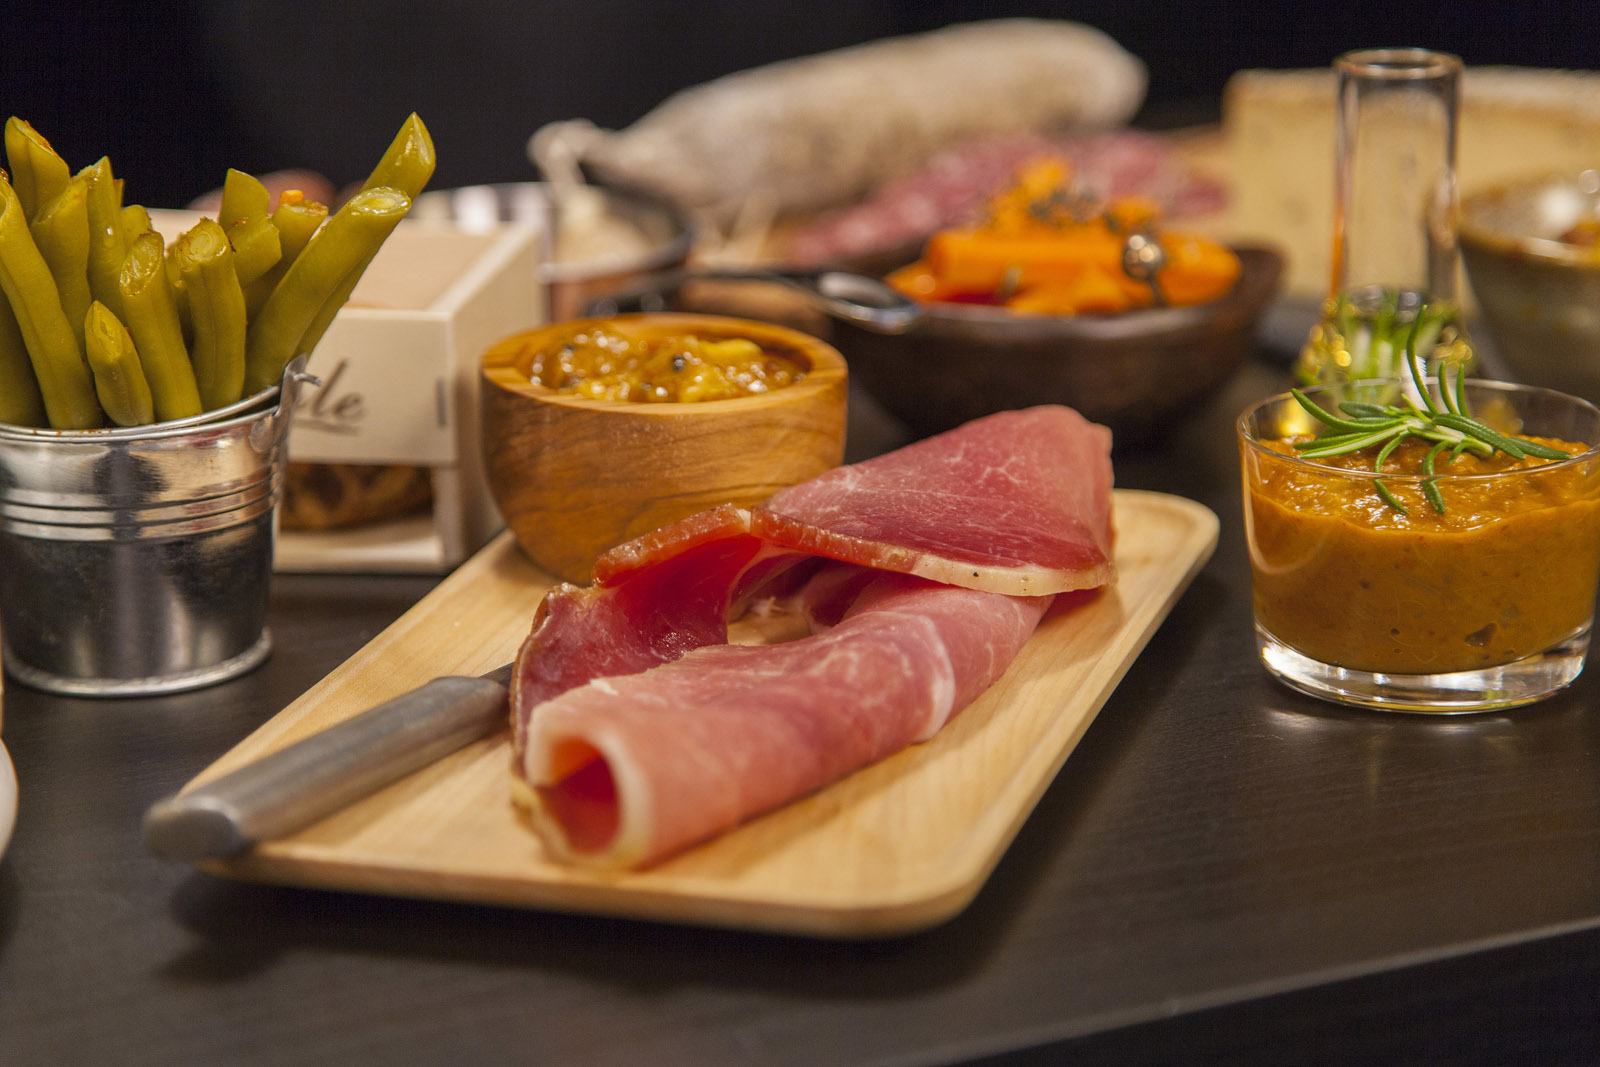 This handout photo provided by the National Restaurant Association shows house-made charcuterie, which is among the hot new menu items that restaurant-goers can expect to see in 2017, according to the association's annual survey of chefs. (Courtesy National Restaurant Association)